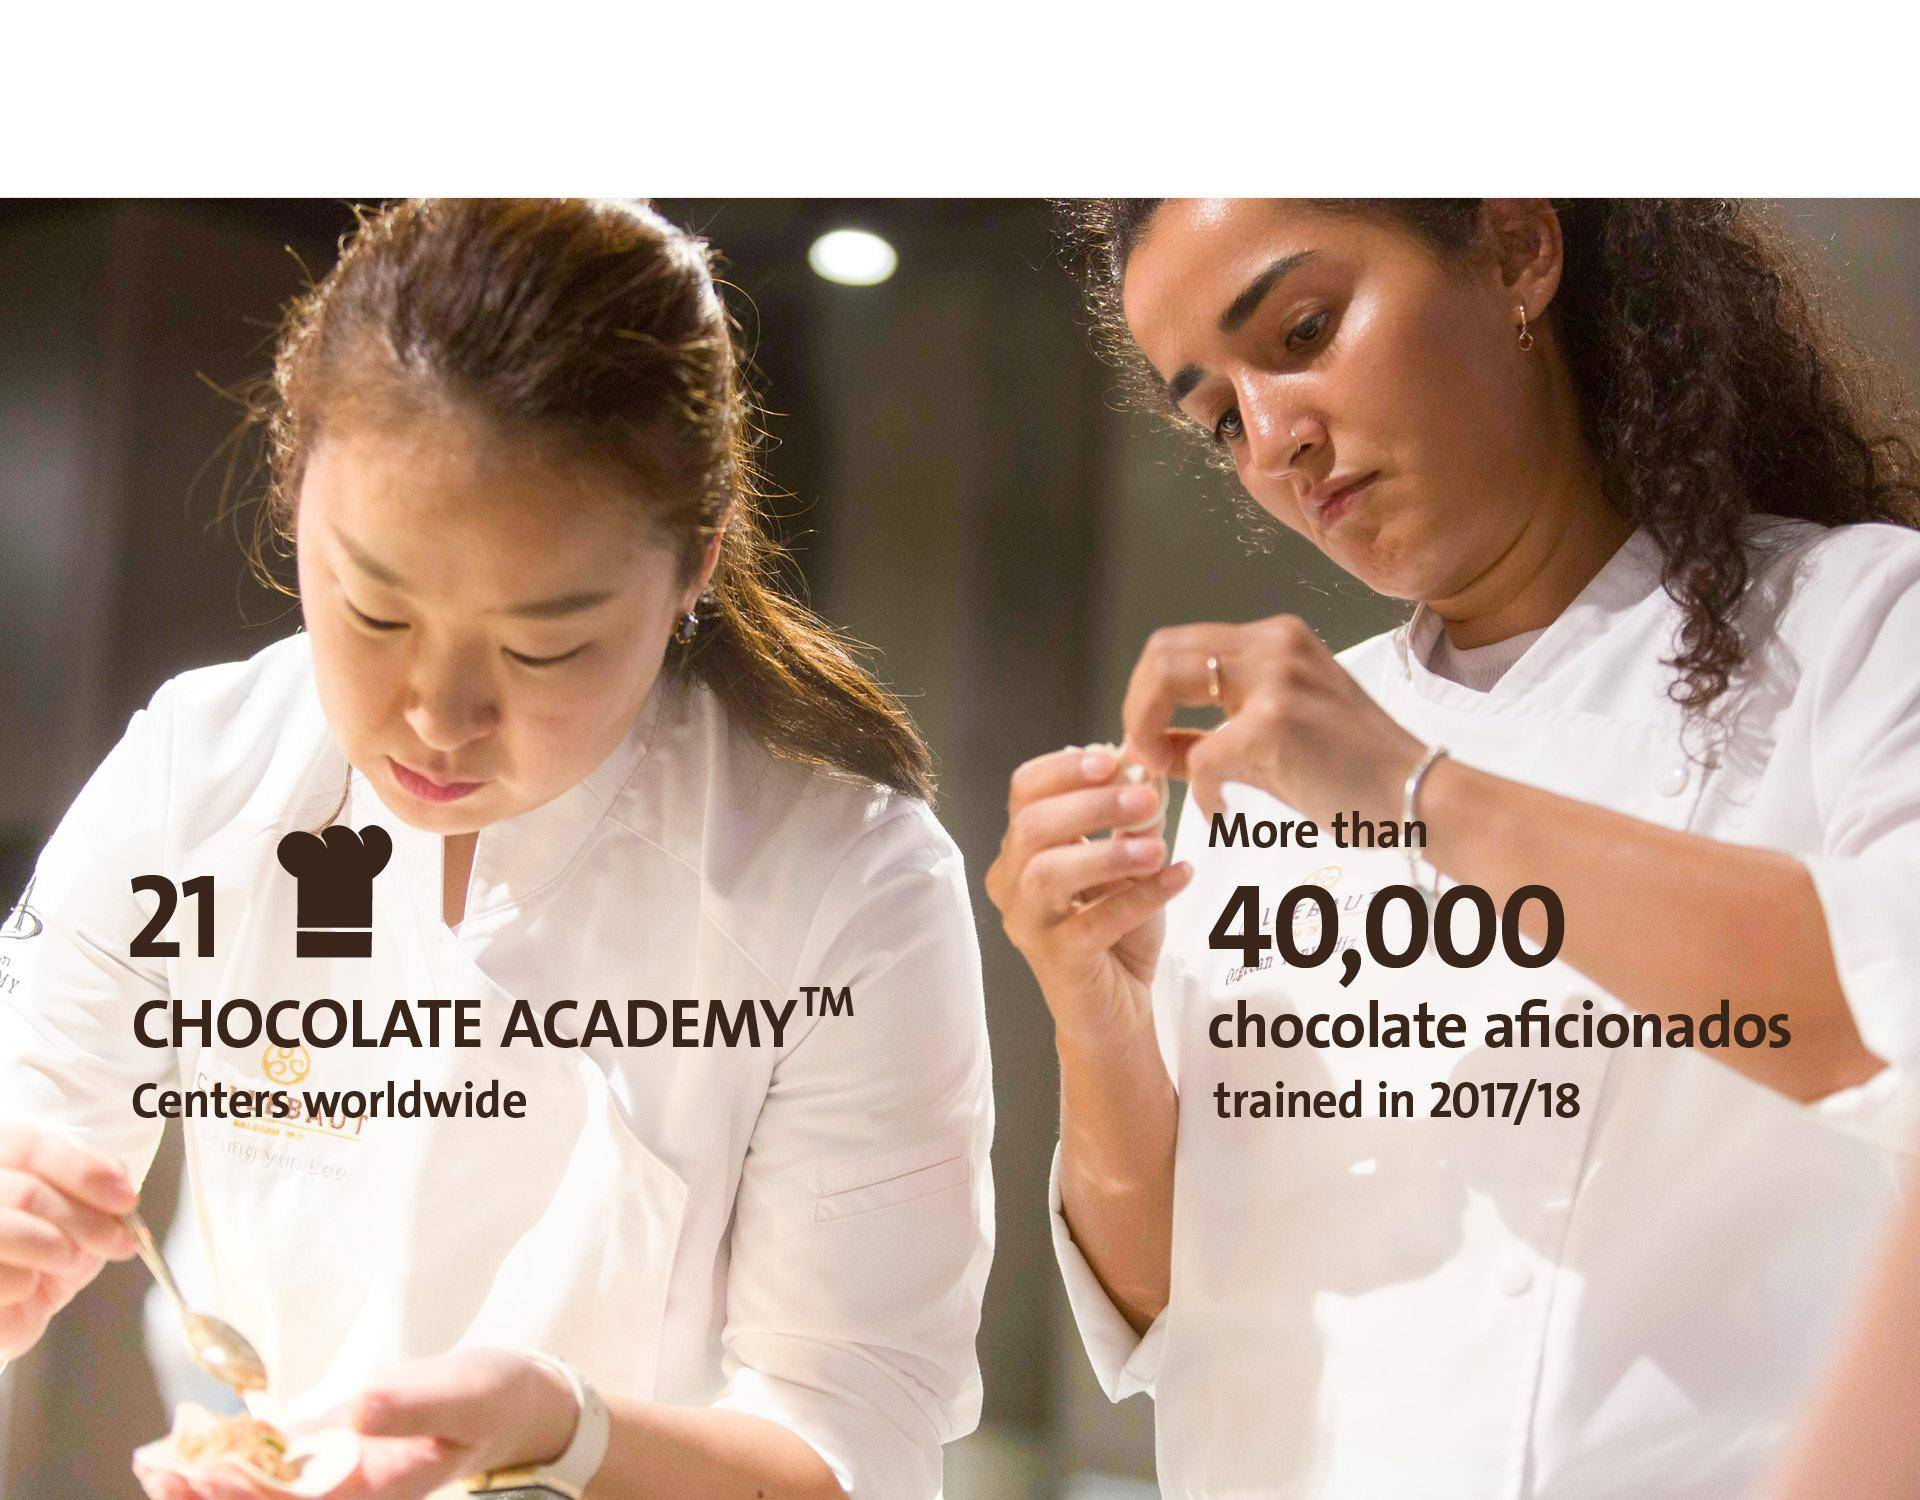 Image Slider Chocolate Academy Fiscal Year 2017/18 Barry Callebaut Group